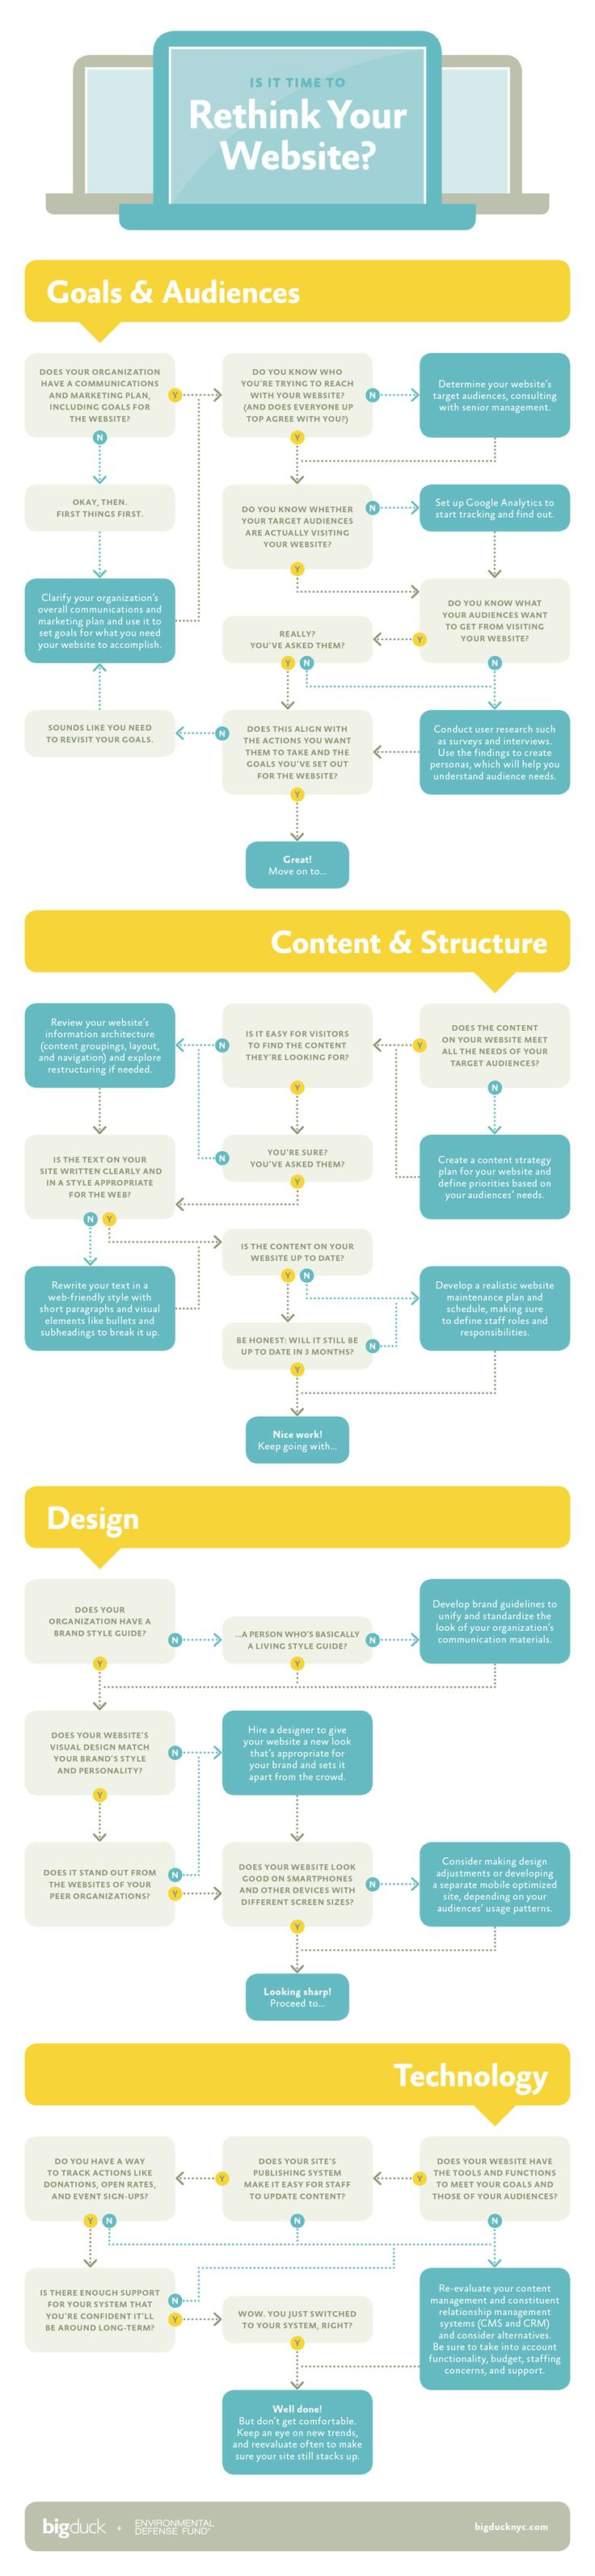 Infographic: Does your website need an overhaul?